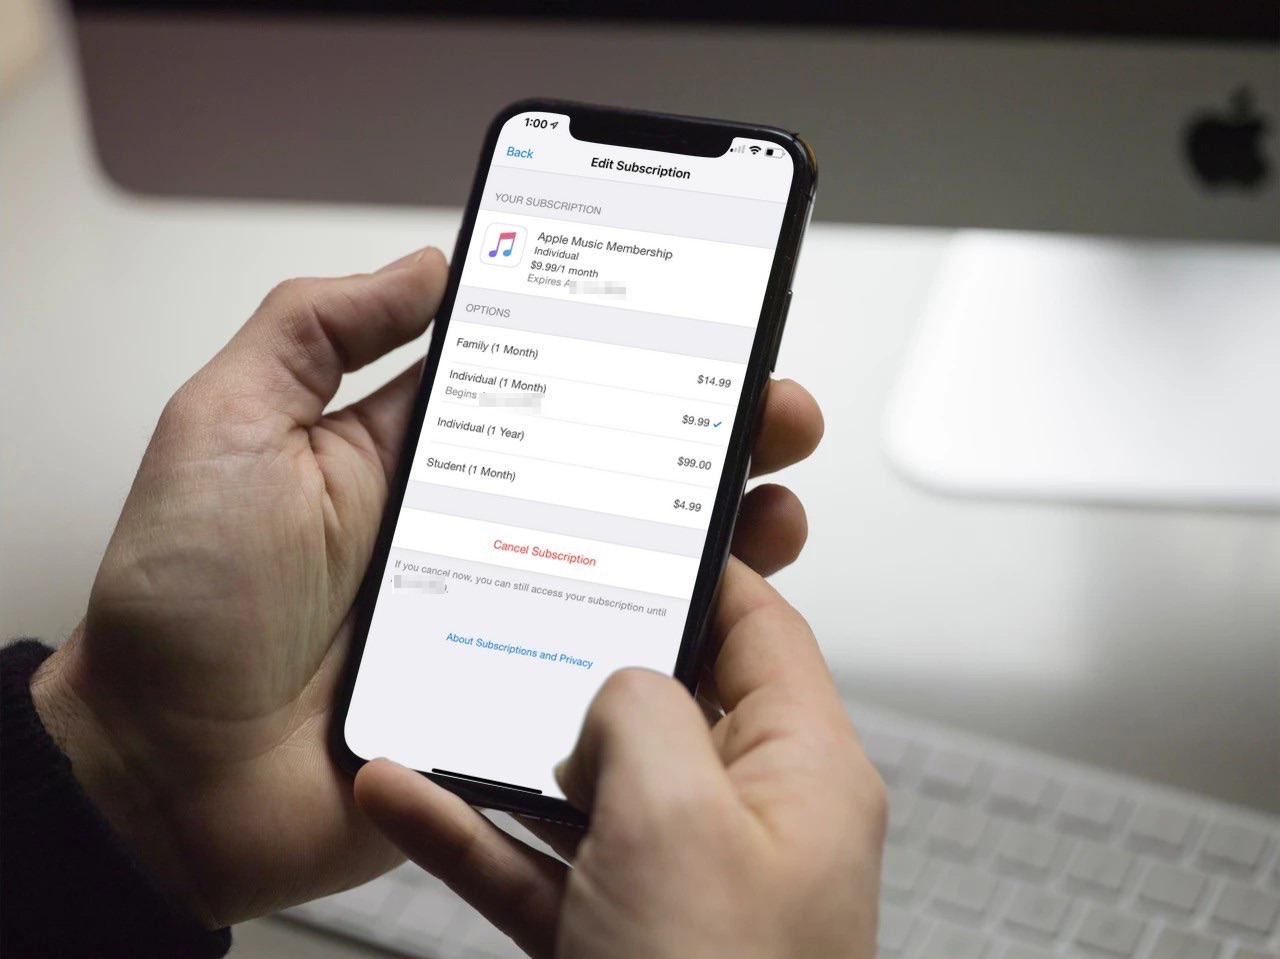 How To Cancel or Change Subscriptions on Your iOS Device